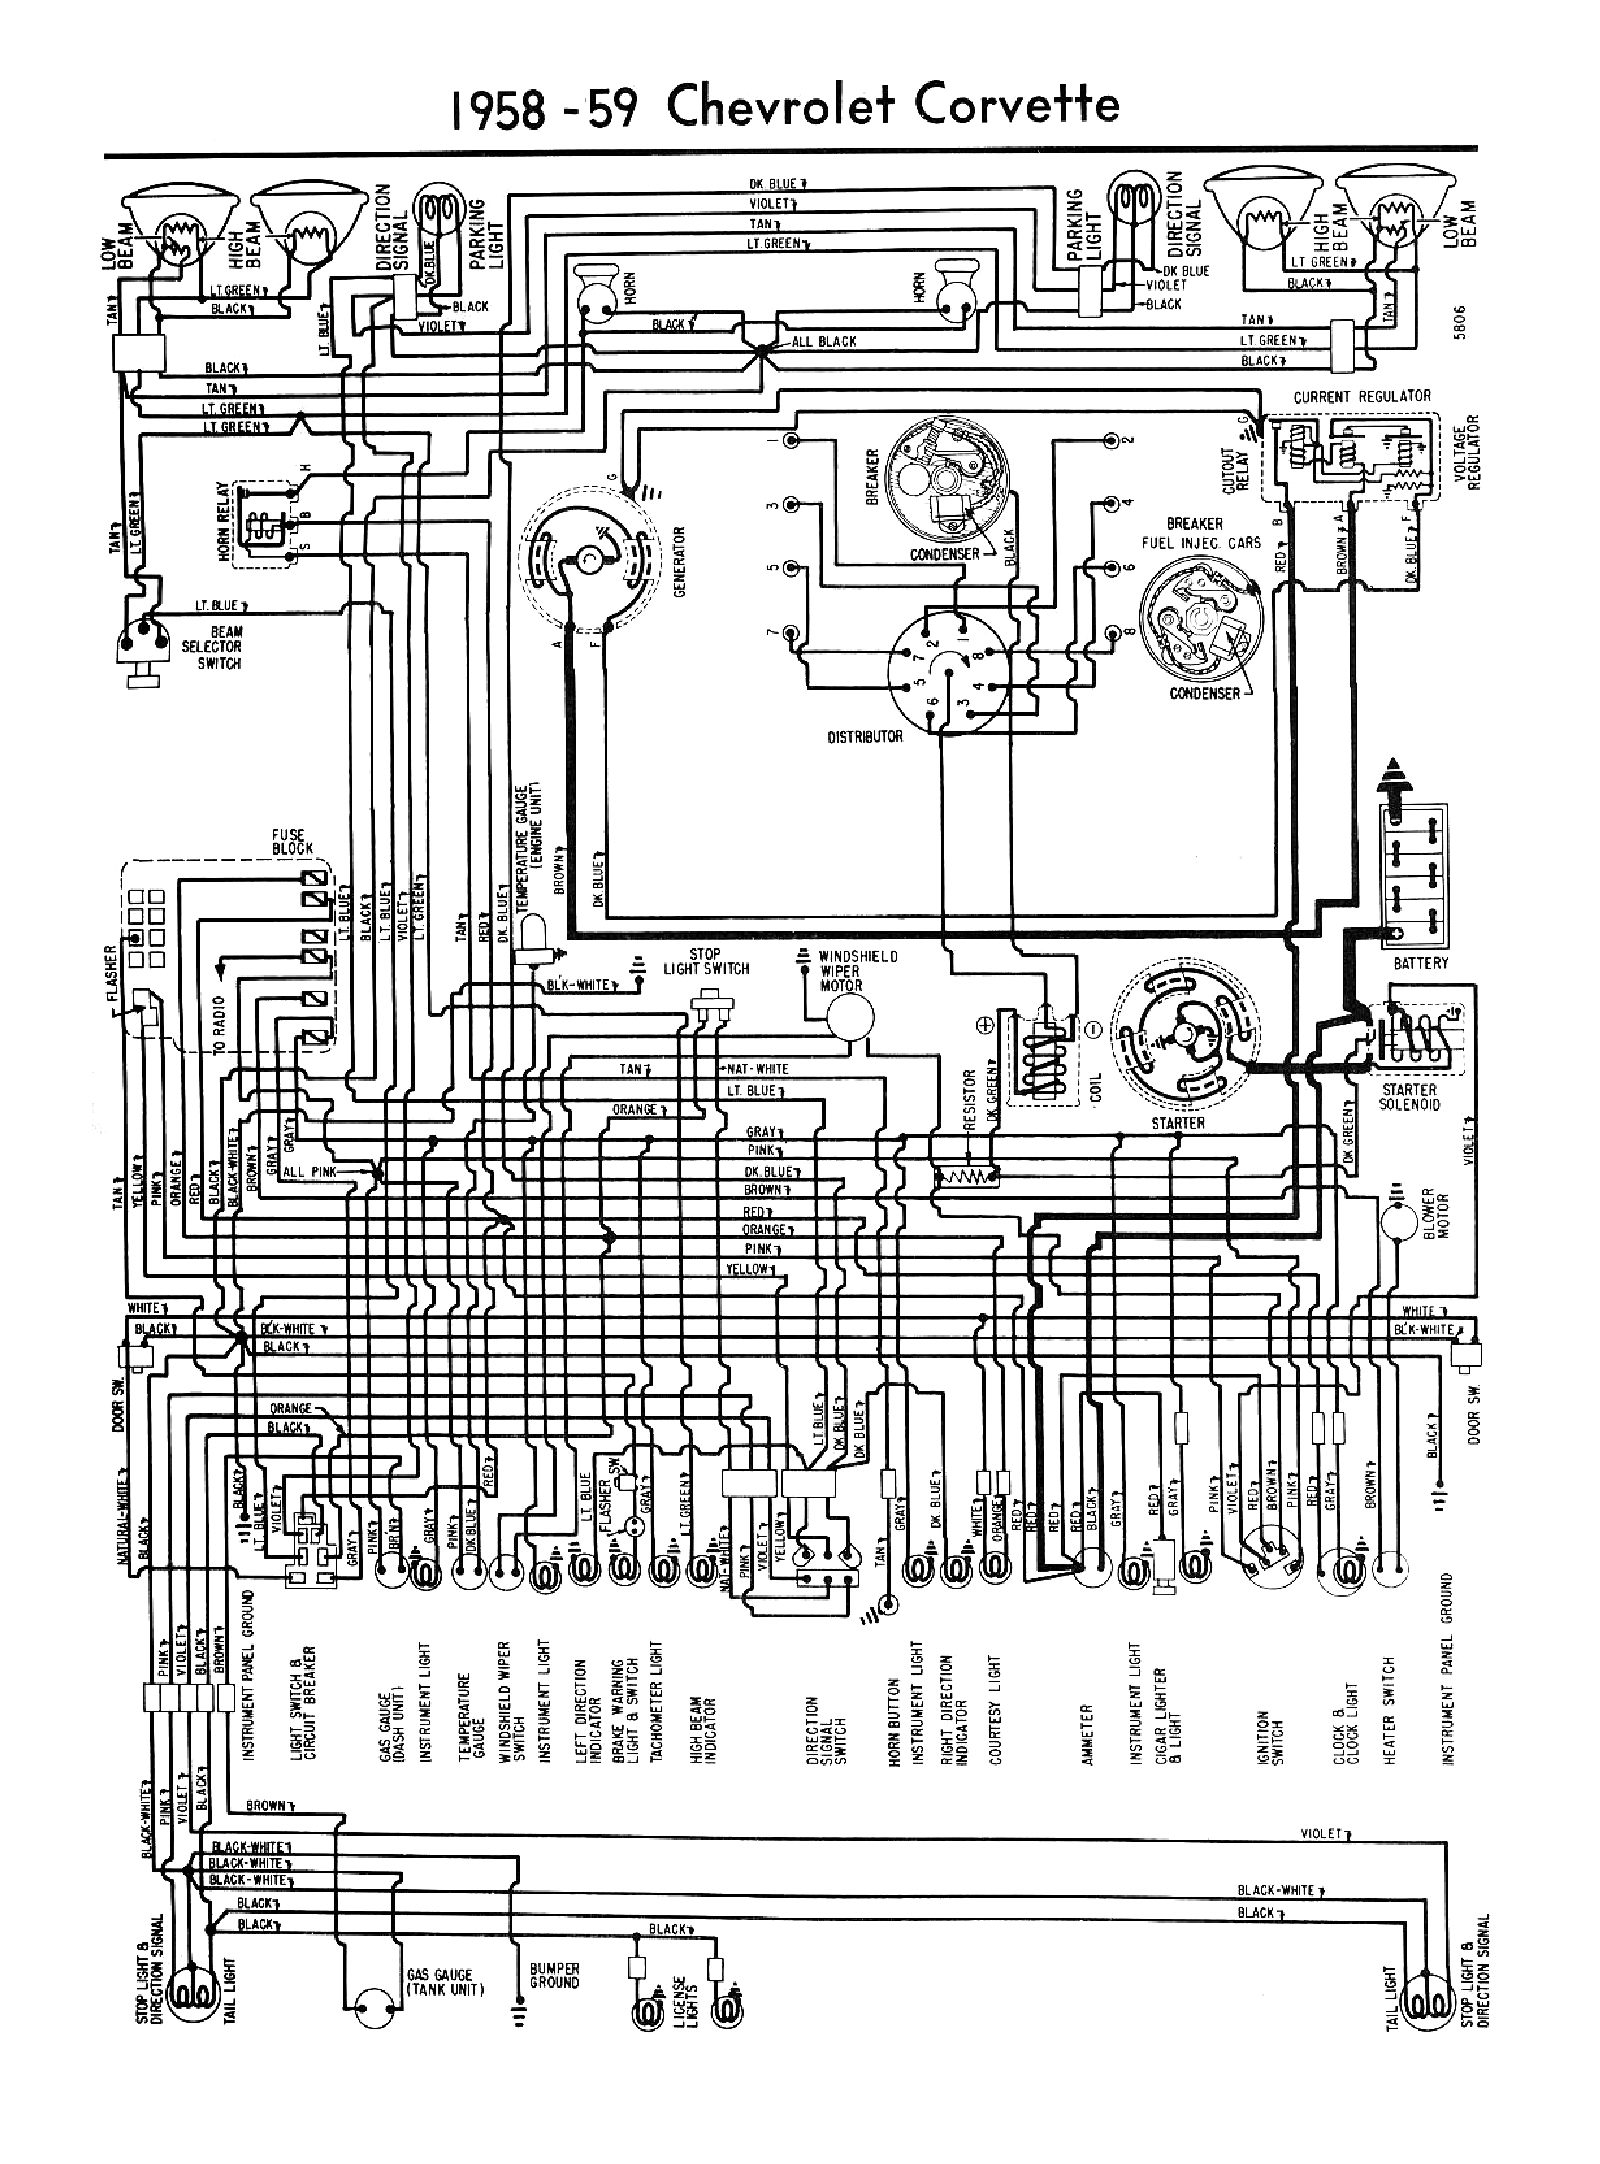 80 Chevy Starter Wiring Diagram - Electrical Work Wiring Diagram •